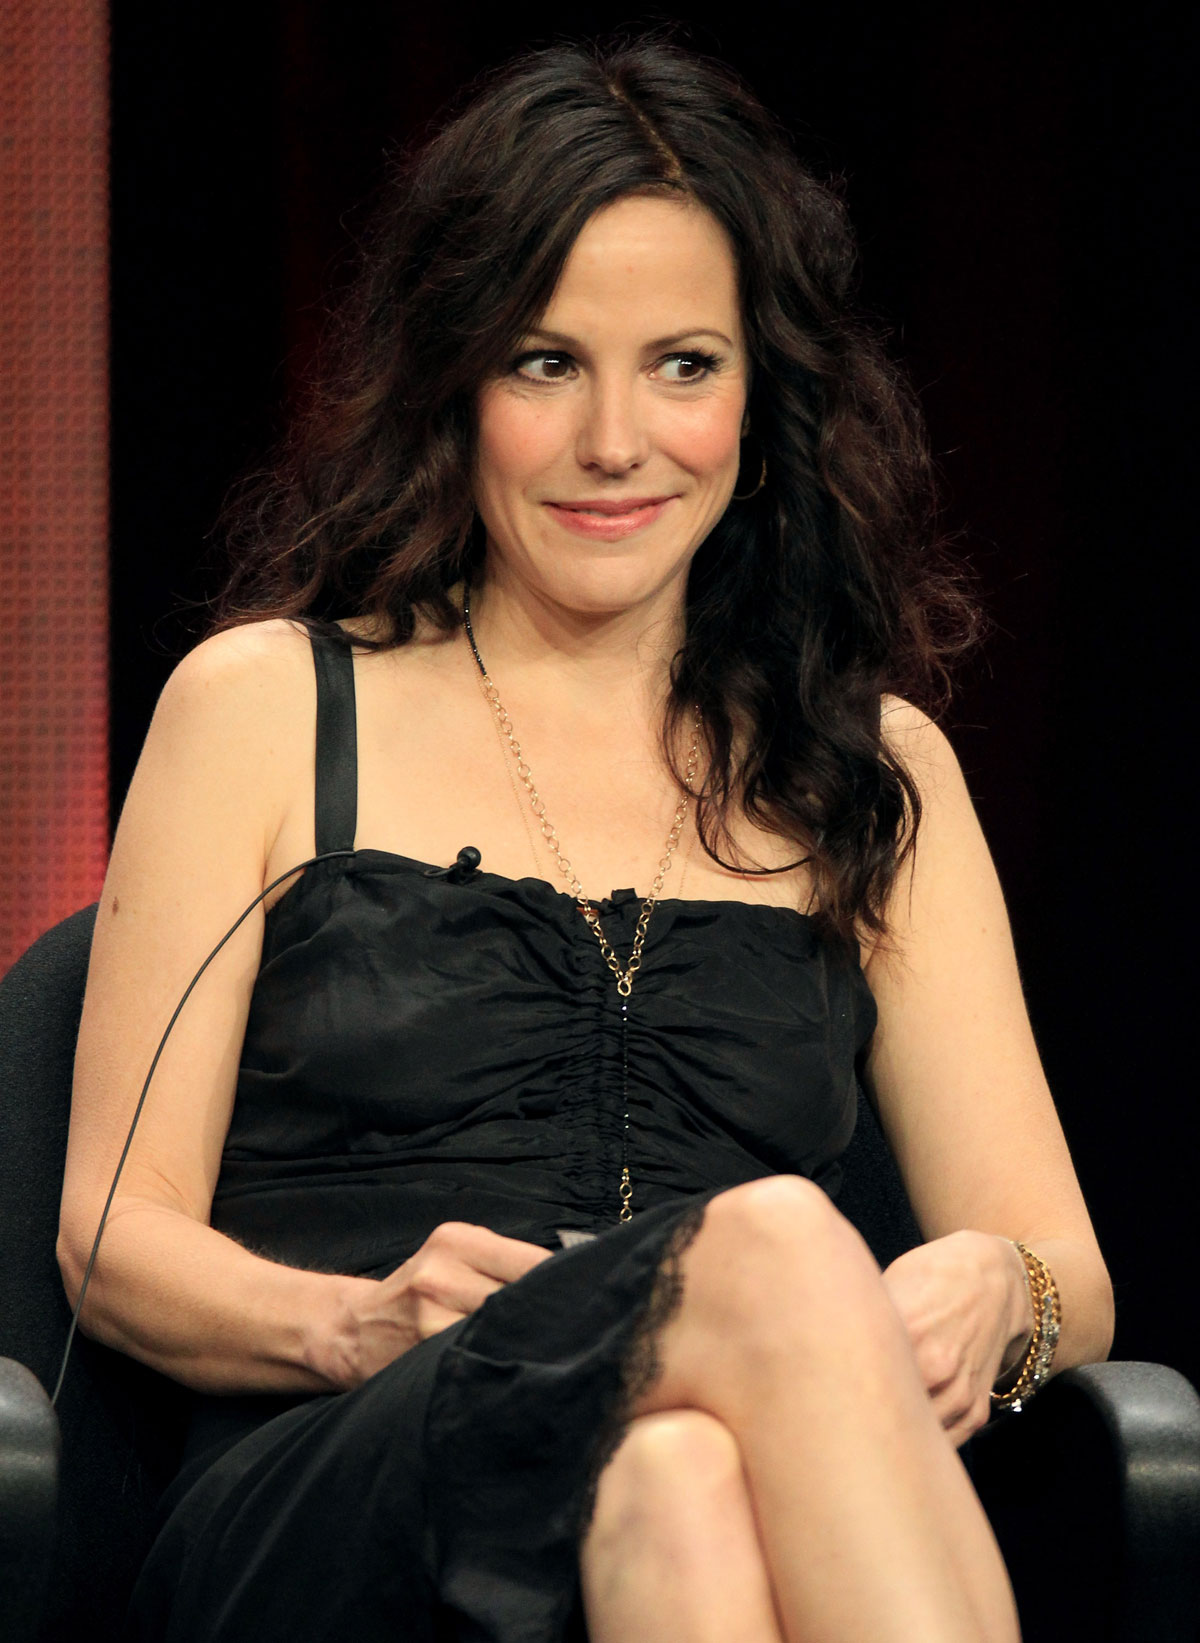 MARY-LOUISE-PARKER-at-Weeds-Panel-at-2012-Summer-TCA-Tour-in-Los-Angeles-6.jpg